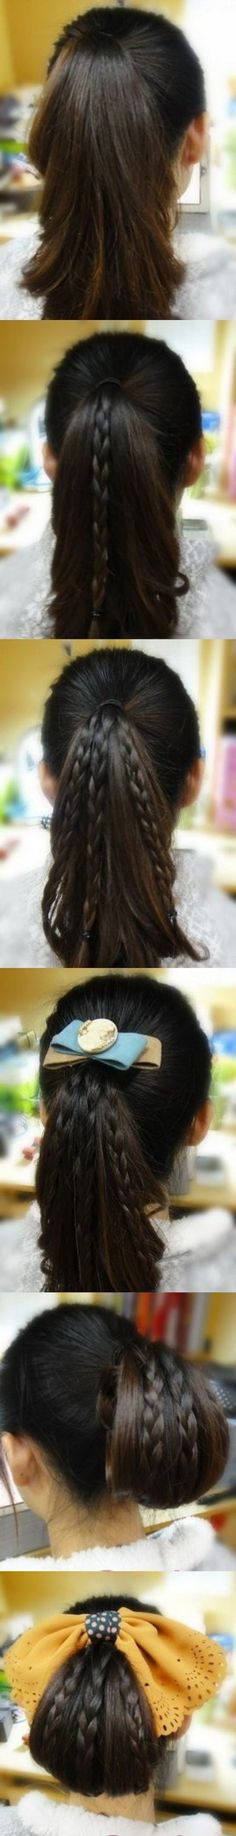 Simple and beautiful updo #hair #pictorial